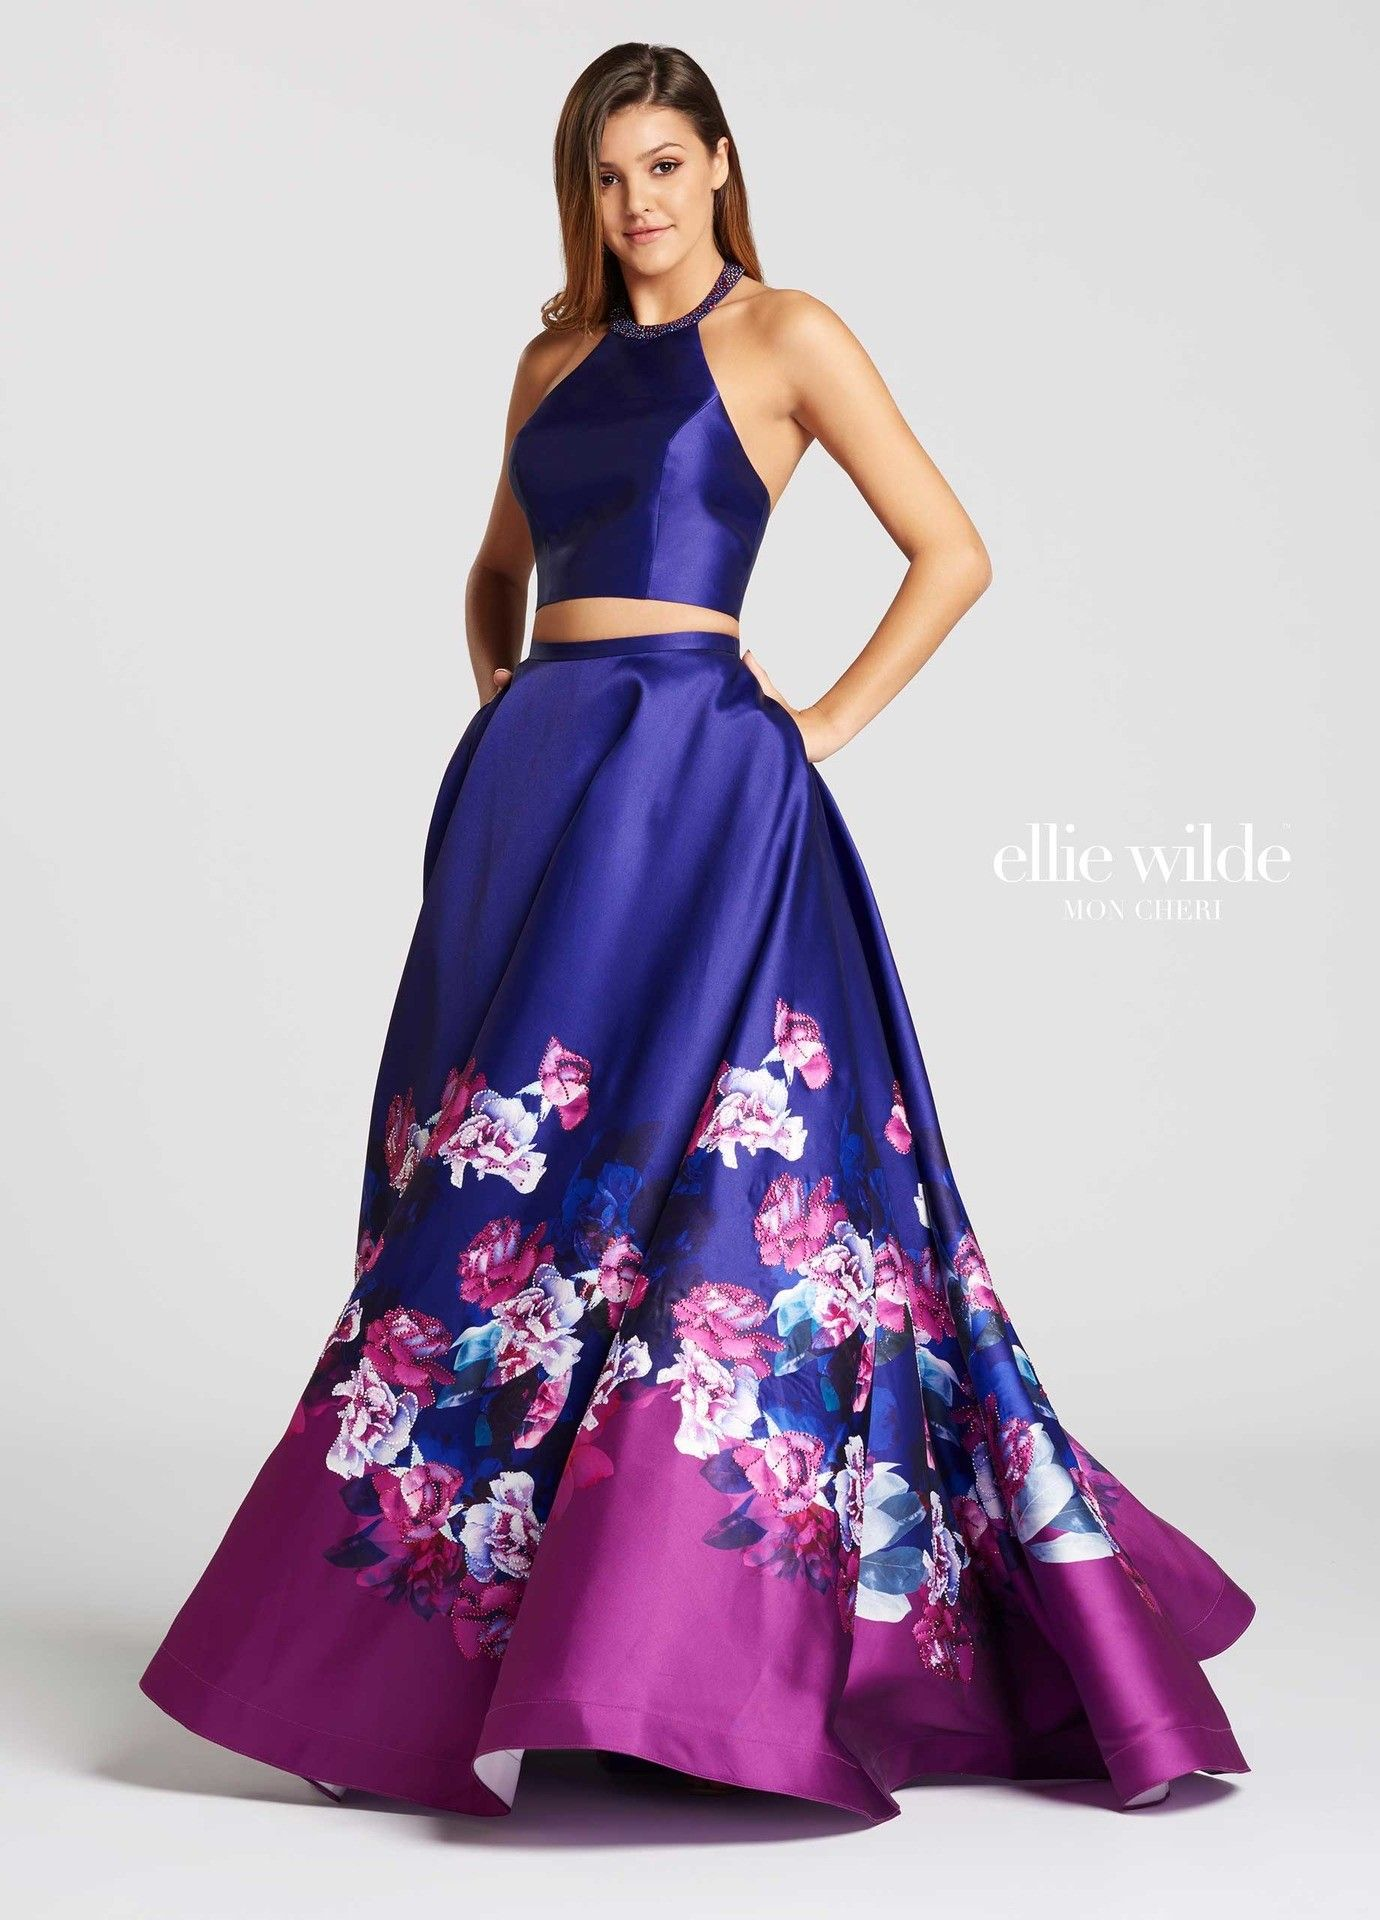 506a2e6abfb Shop the new 2018 prom dress collection from Ellie Wilde featuring Ellie  Wilde EW118001. Ellie Wilde for Mon Cheri features a collection full of  exclusive ...